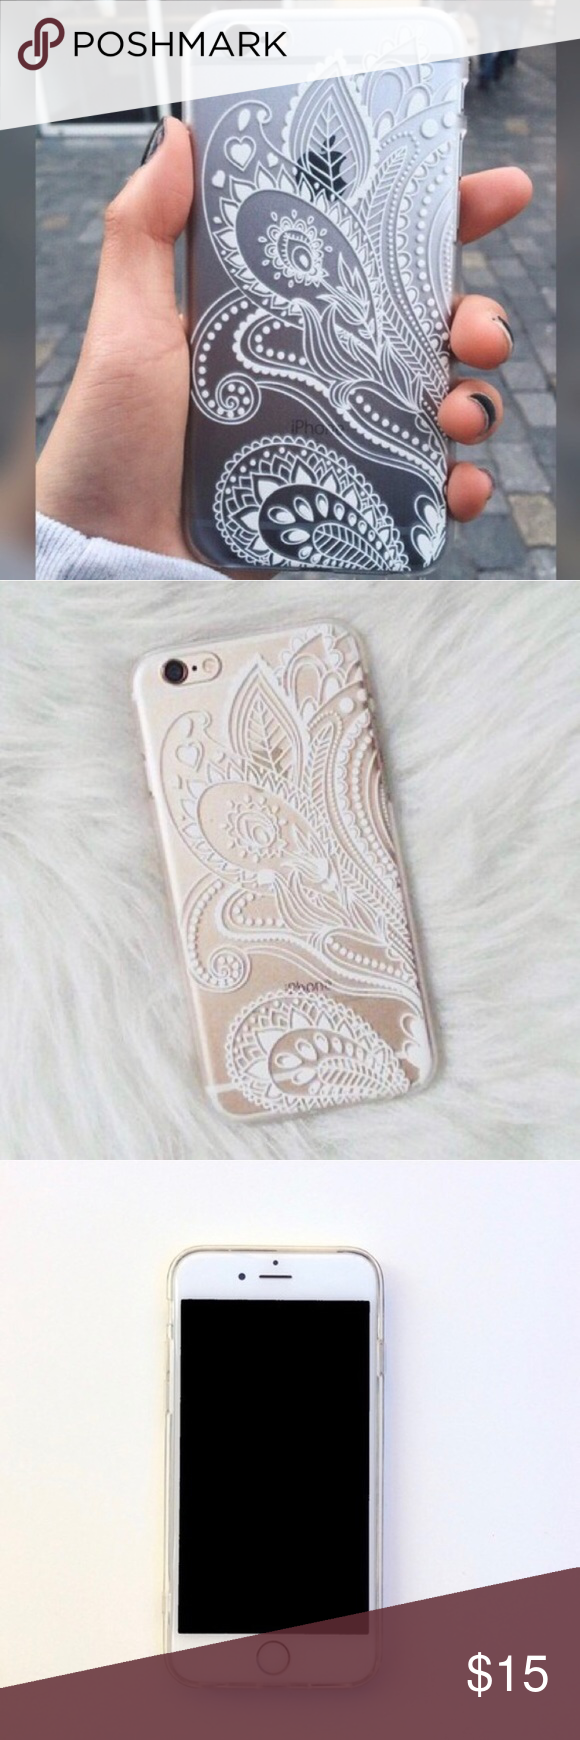 Henna iPhone 7 case New. Soft bendable material. Henna white design on clear case. No trades. Price is negotiable. Accessories Phone Cases